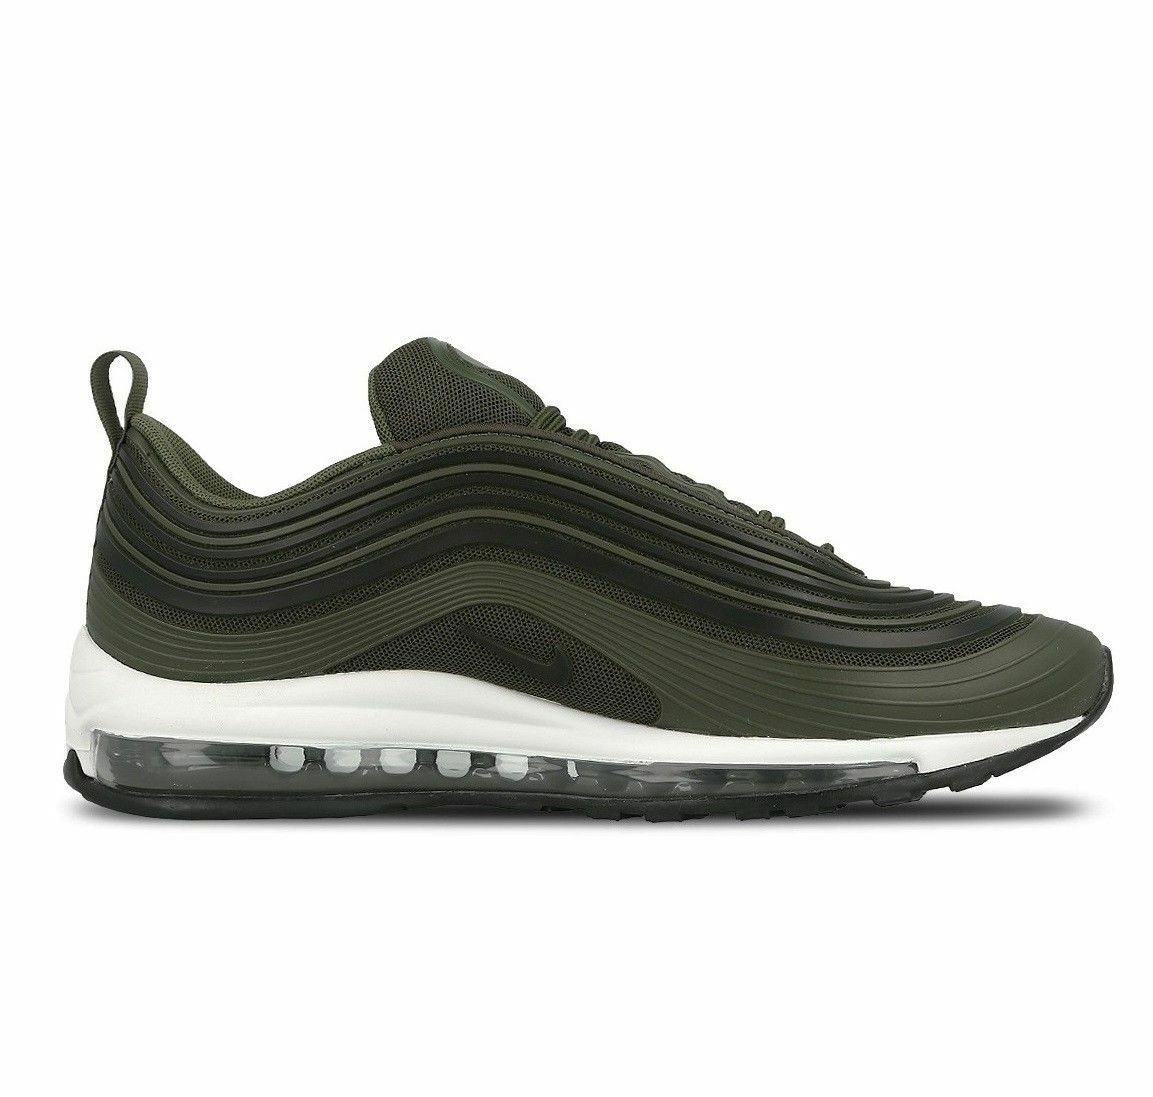 NIKE AIR MAX 97 UL '17 PRM CARGO KHAKIBLACK MEN SIZE 12.5 NEW AH7581 300